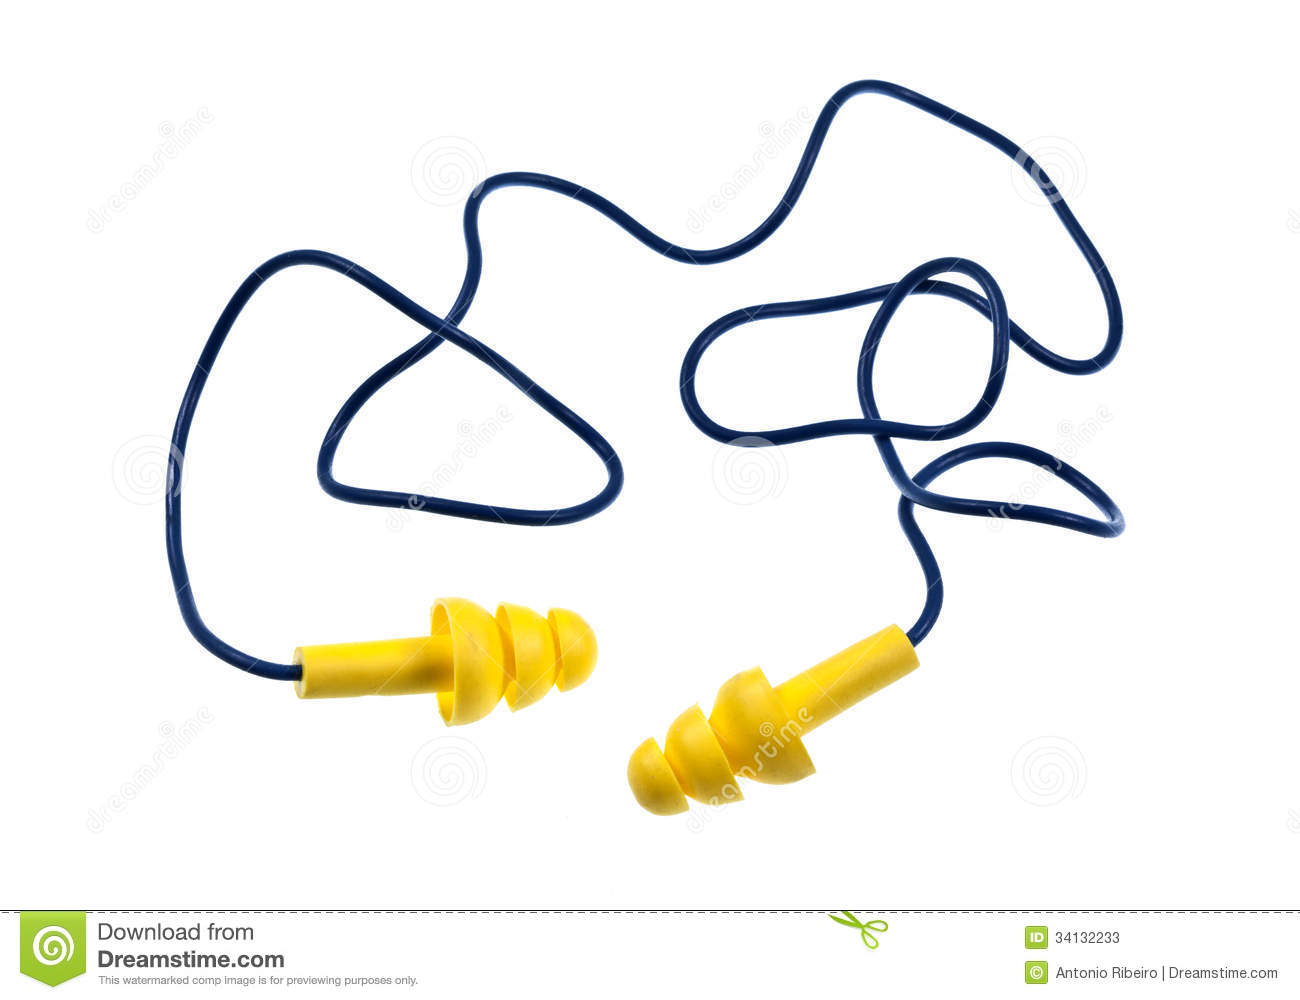 Ear plugs clipart.